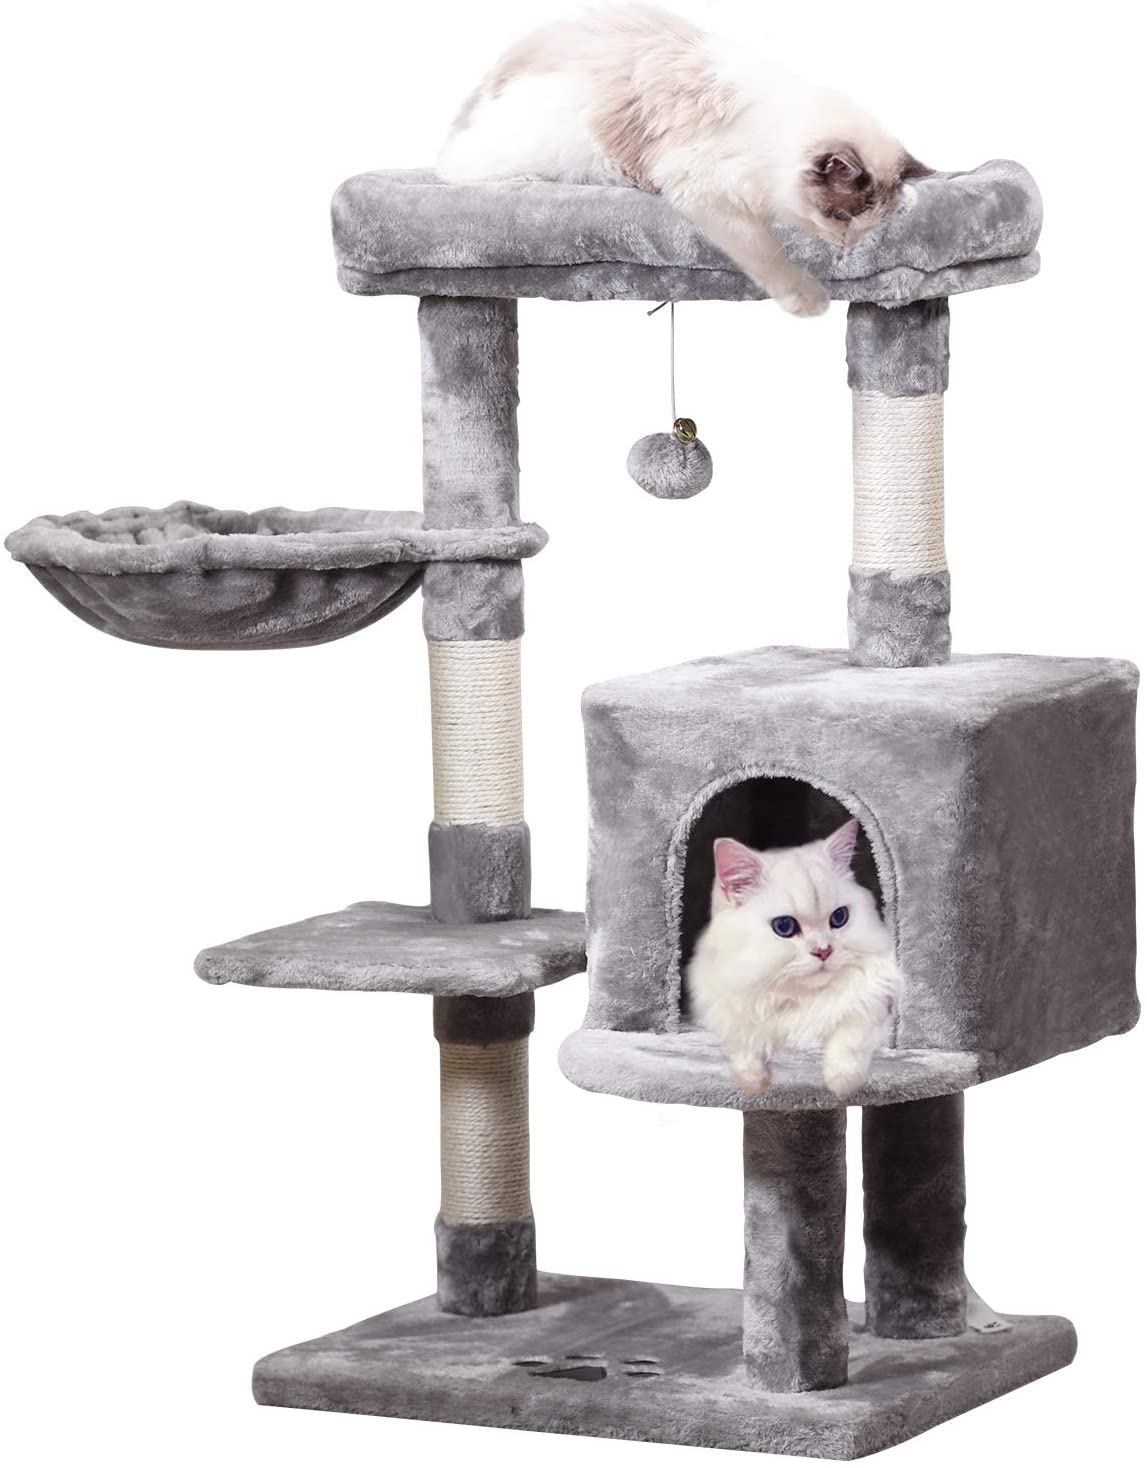 MQ Multi-Level Cat Tree Condo, Activity Center Cat Tower Furniture 36'' with Sisal-Covered Scratching Posts, Padded Plush Perch, Spacious Cat Cave & Basket for Small Kittens Adult Cats